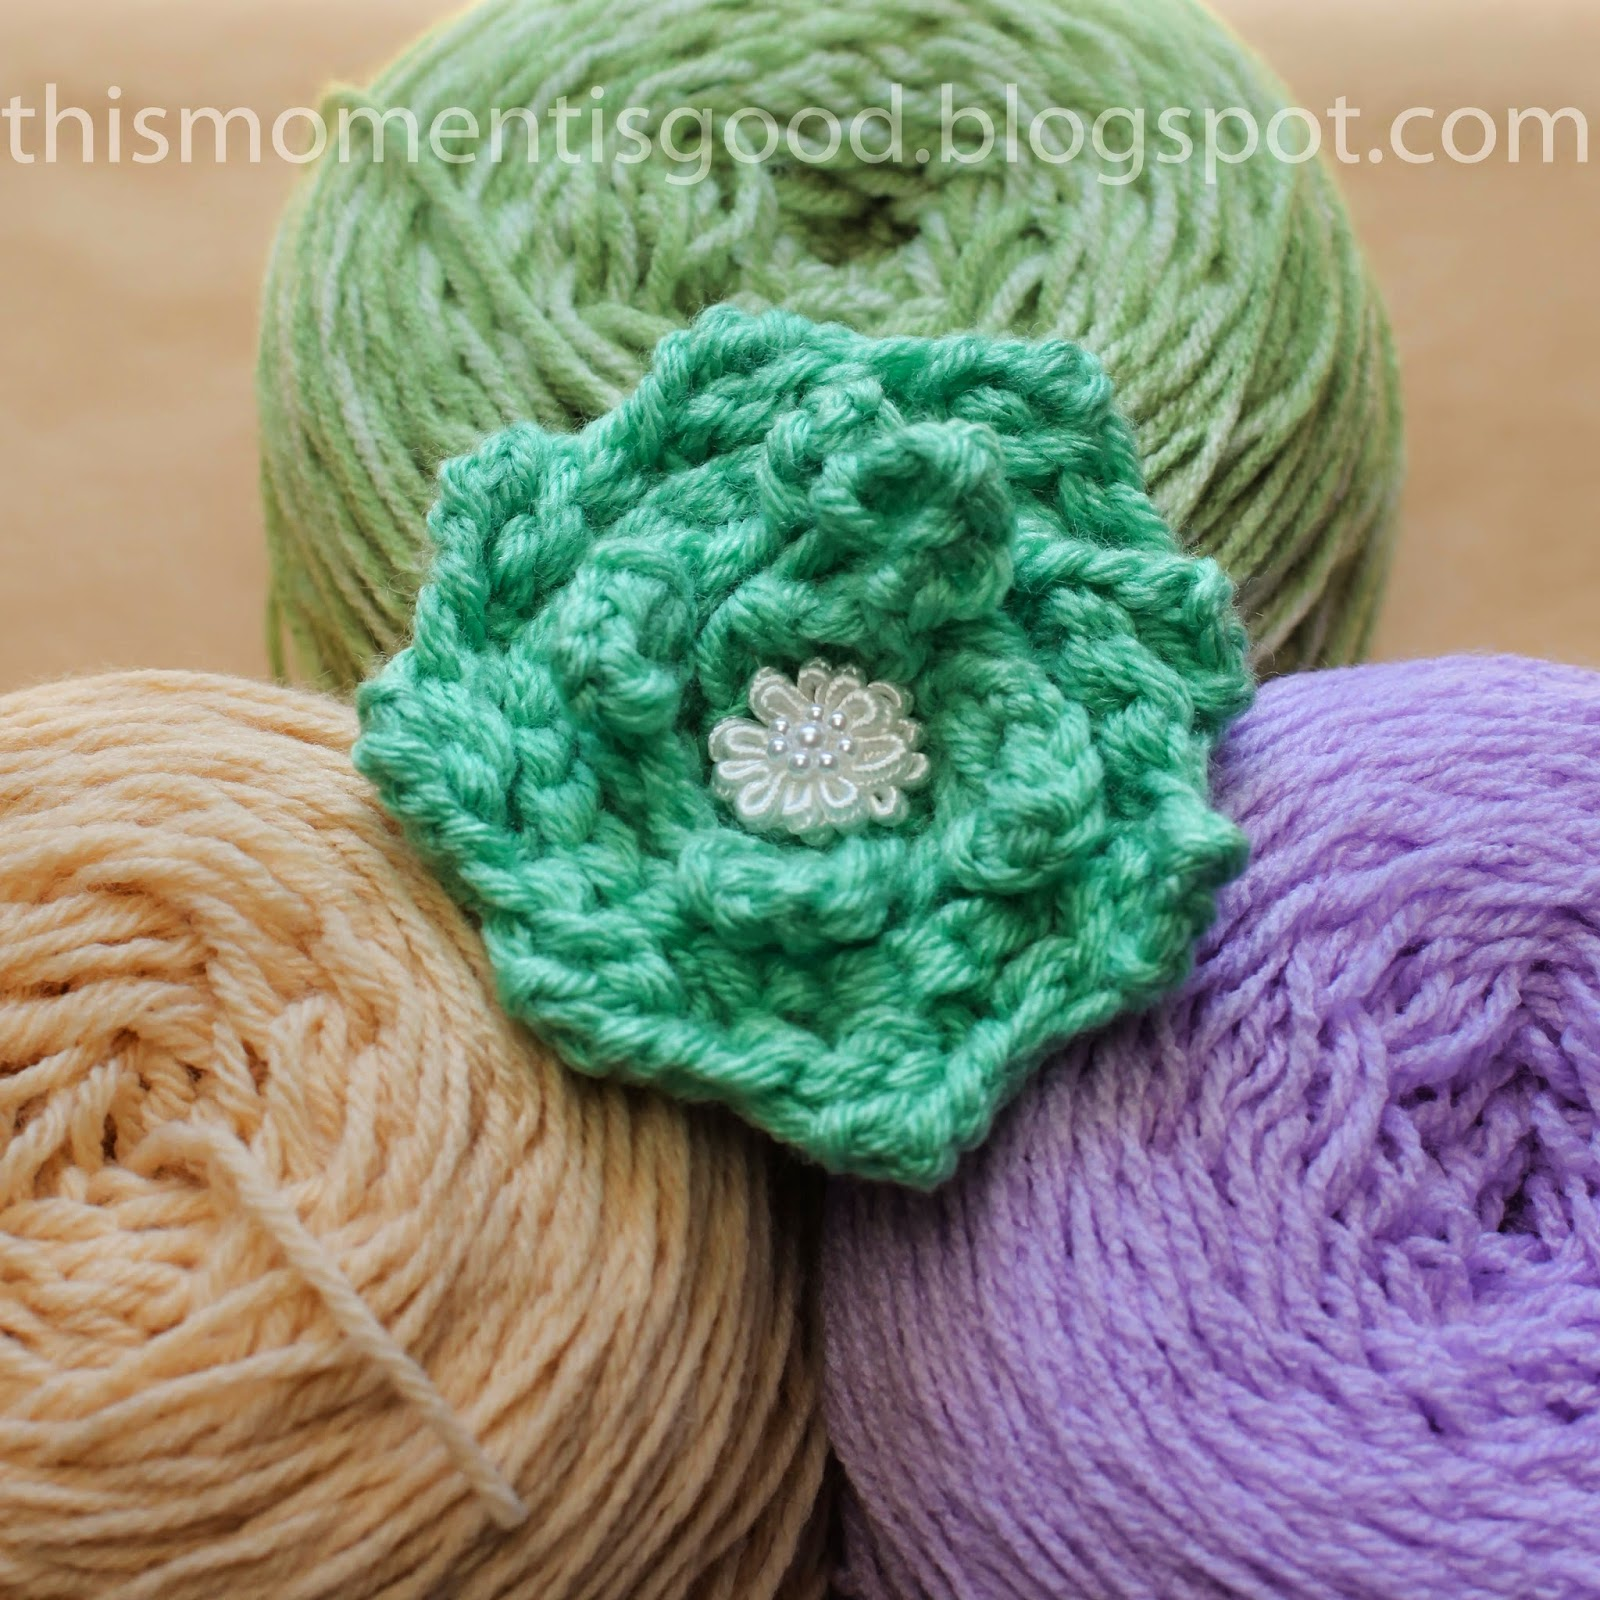 Loom Knitting by This Moment is Good!: LOOM KNIT ROSE PATTERN